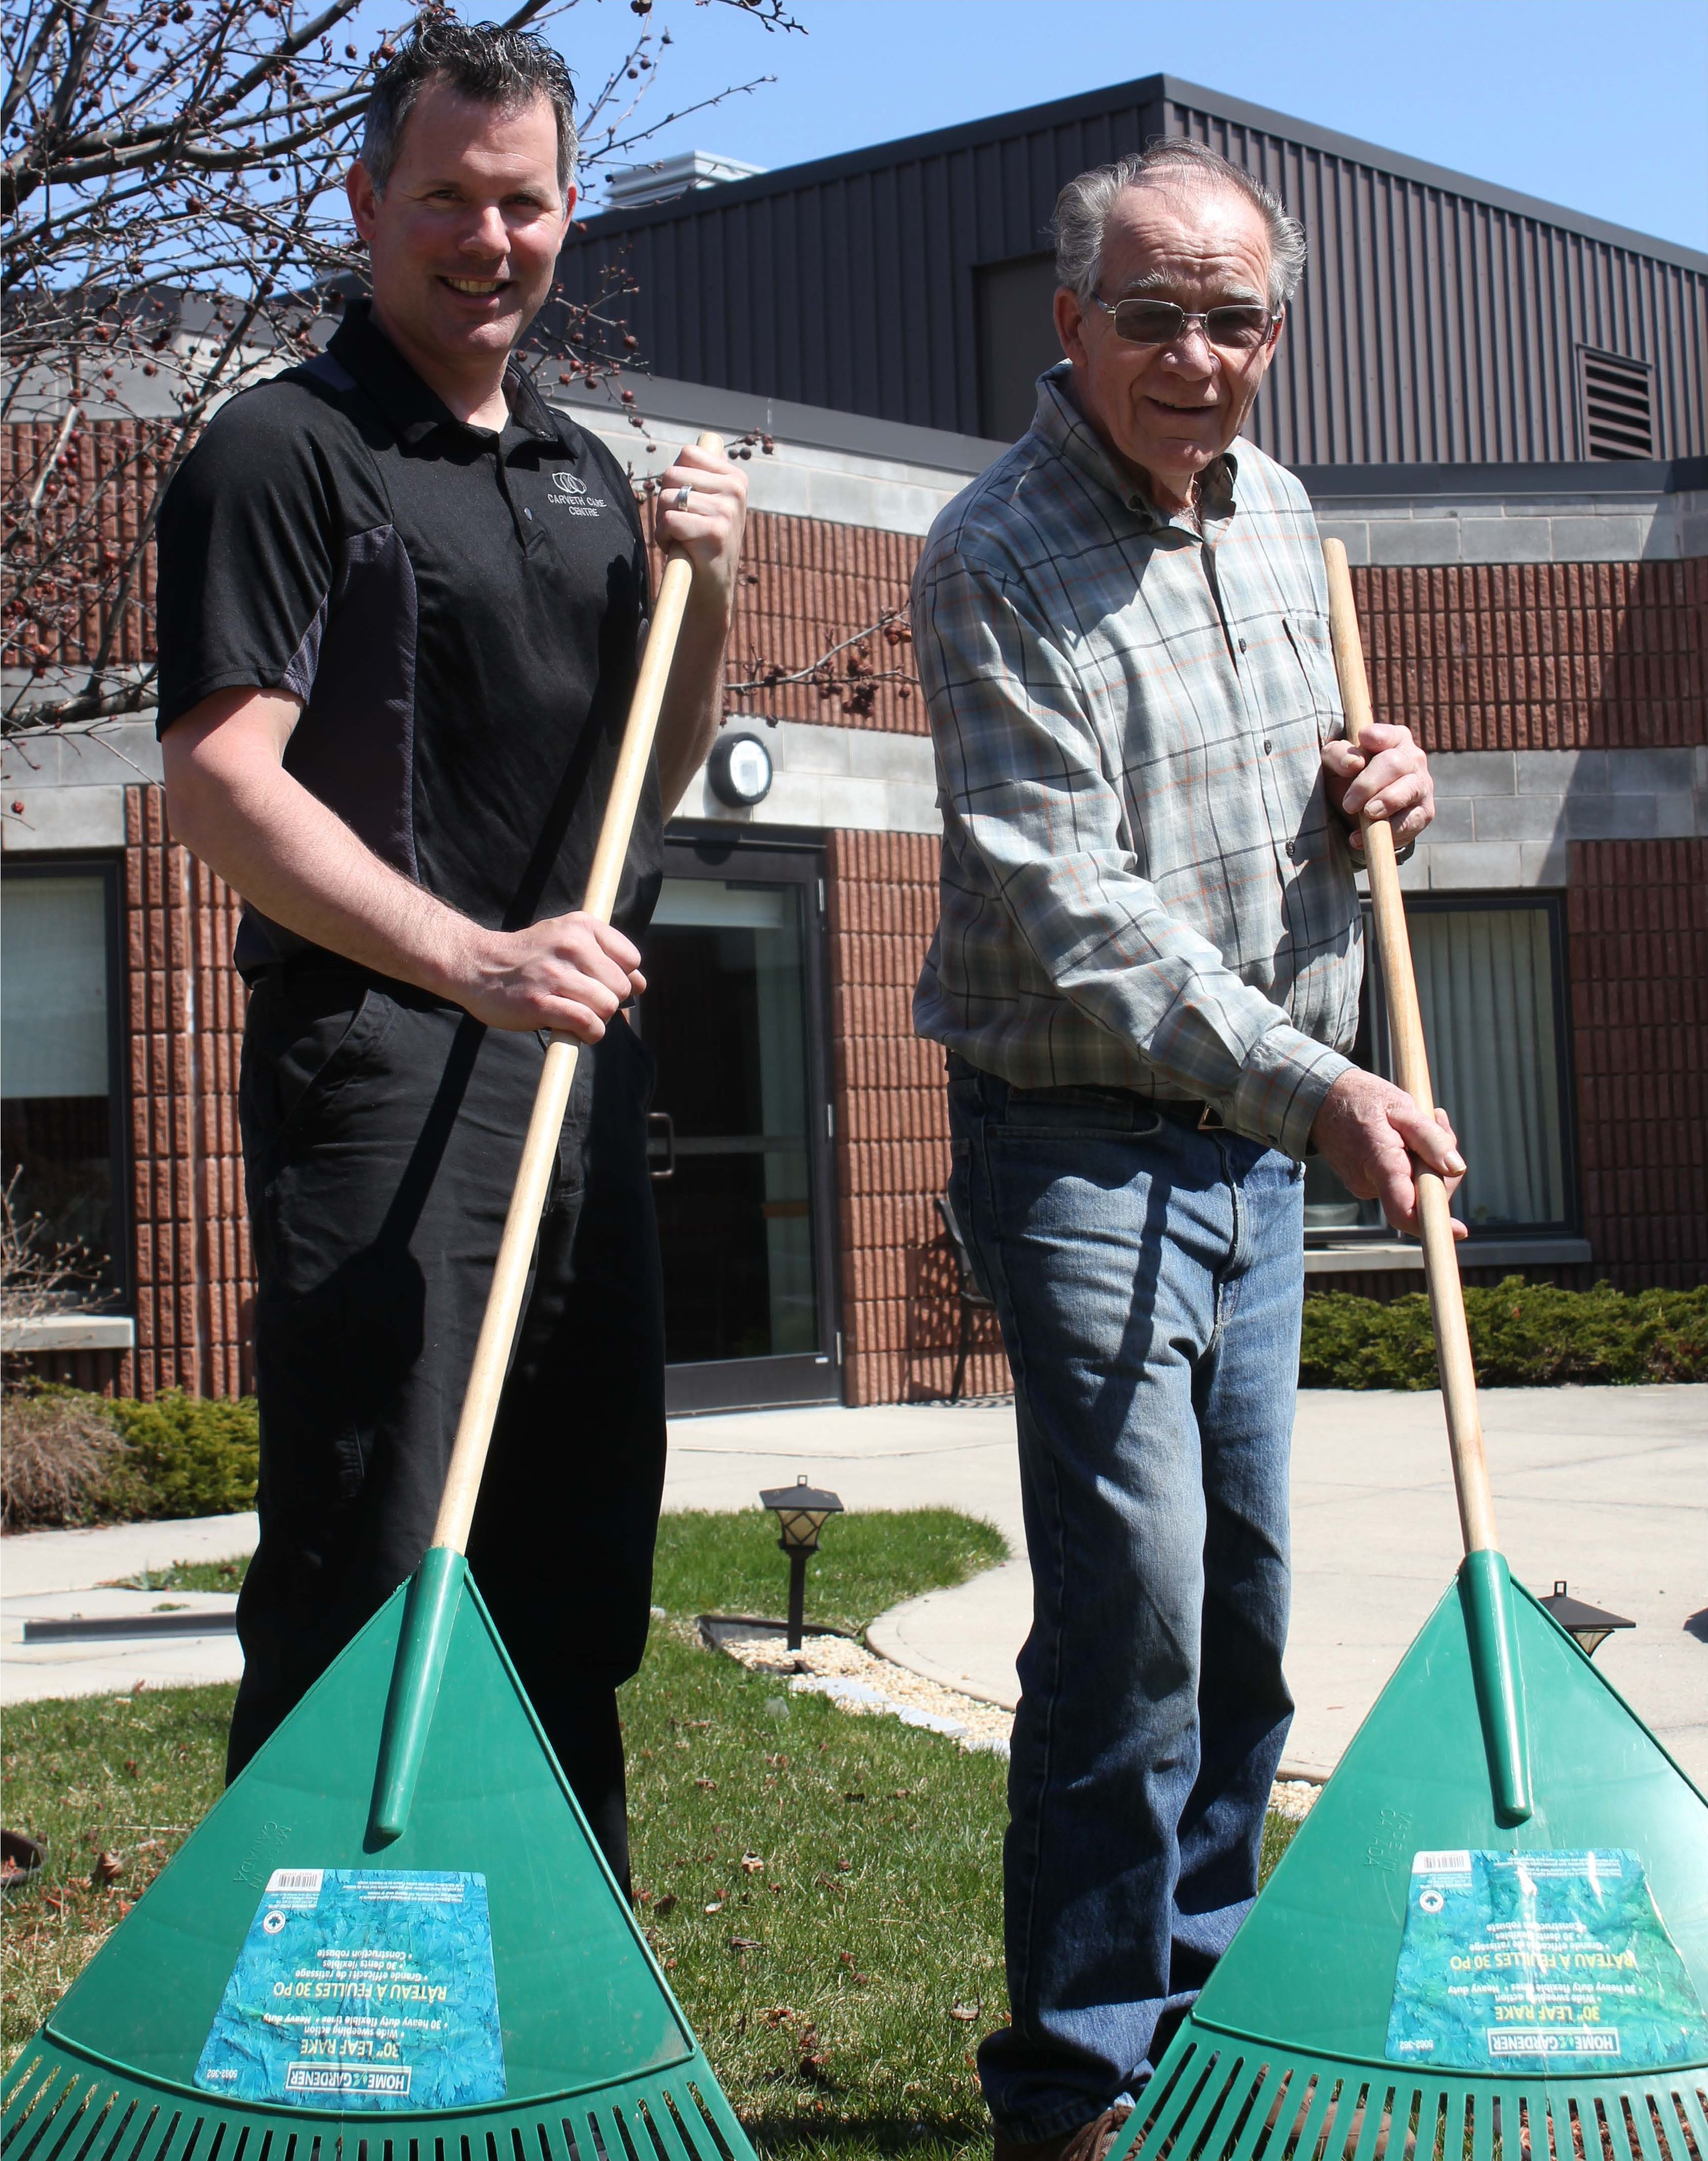 Environmental services manager Tim Keyes and resident Gord Palmer stand side by side raking leaves in front of Carveth Care Centre, with smiles on their faces.